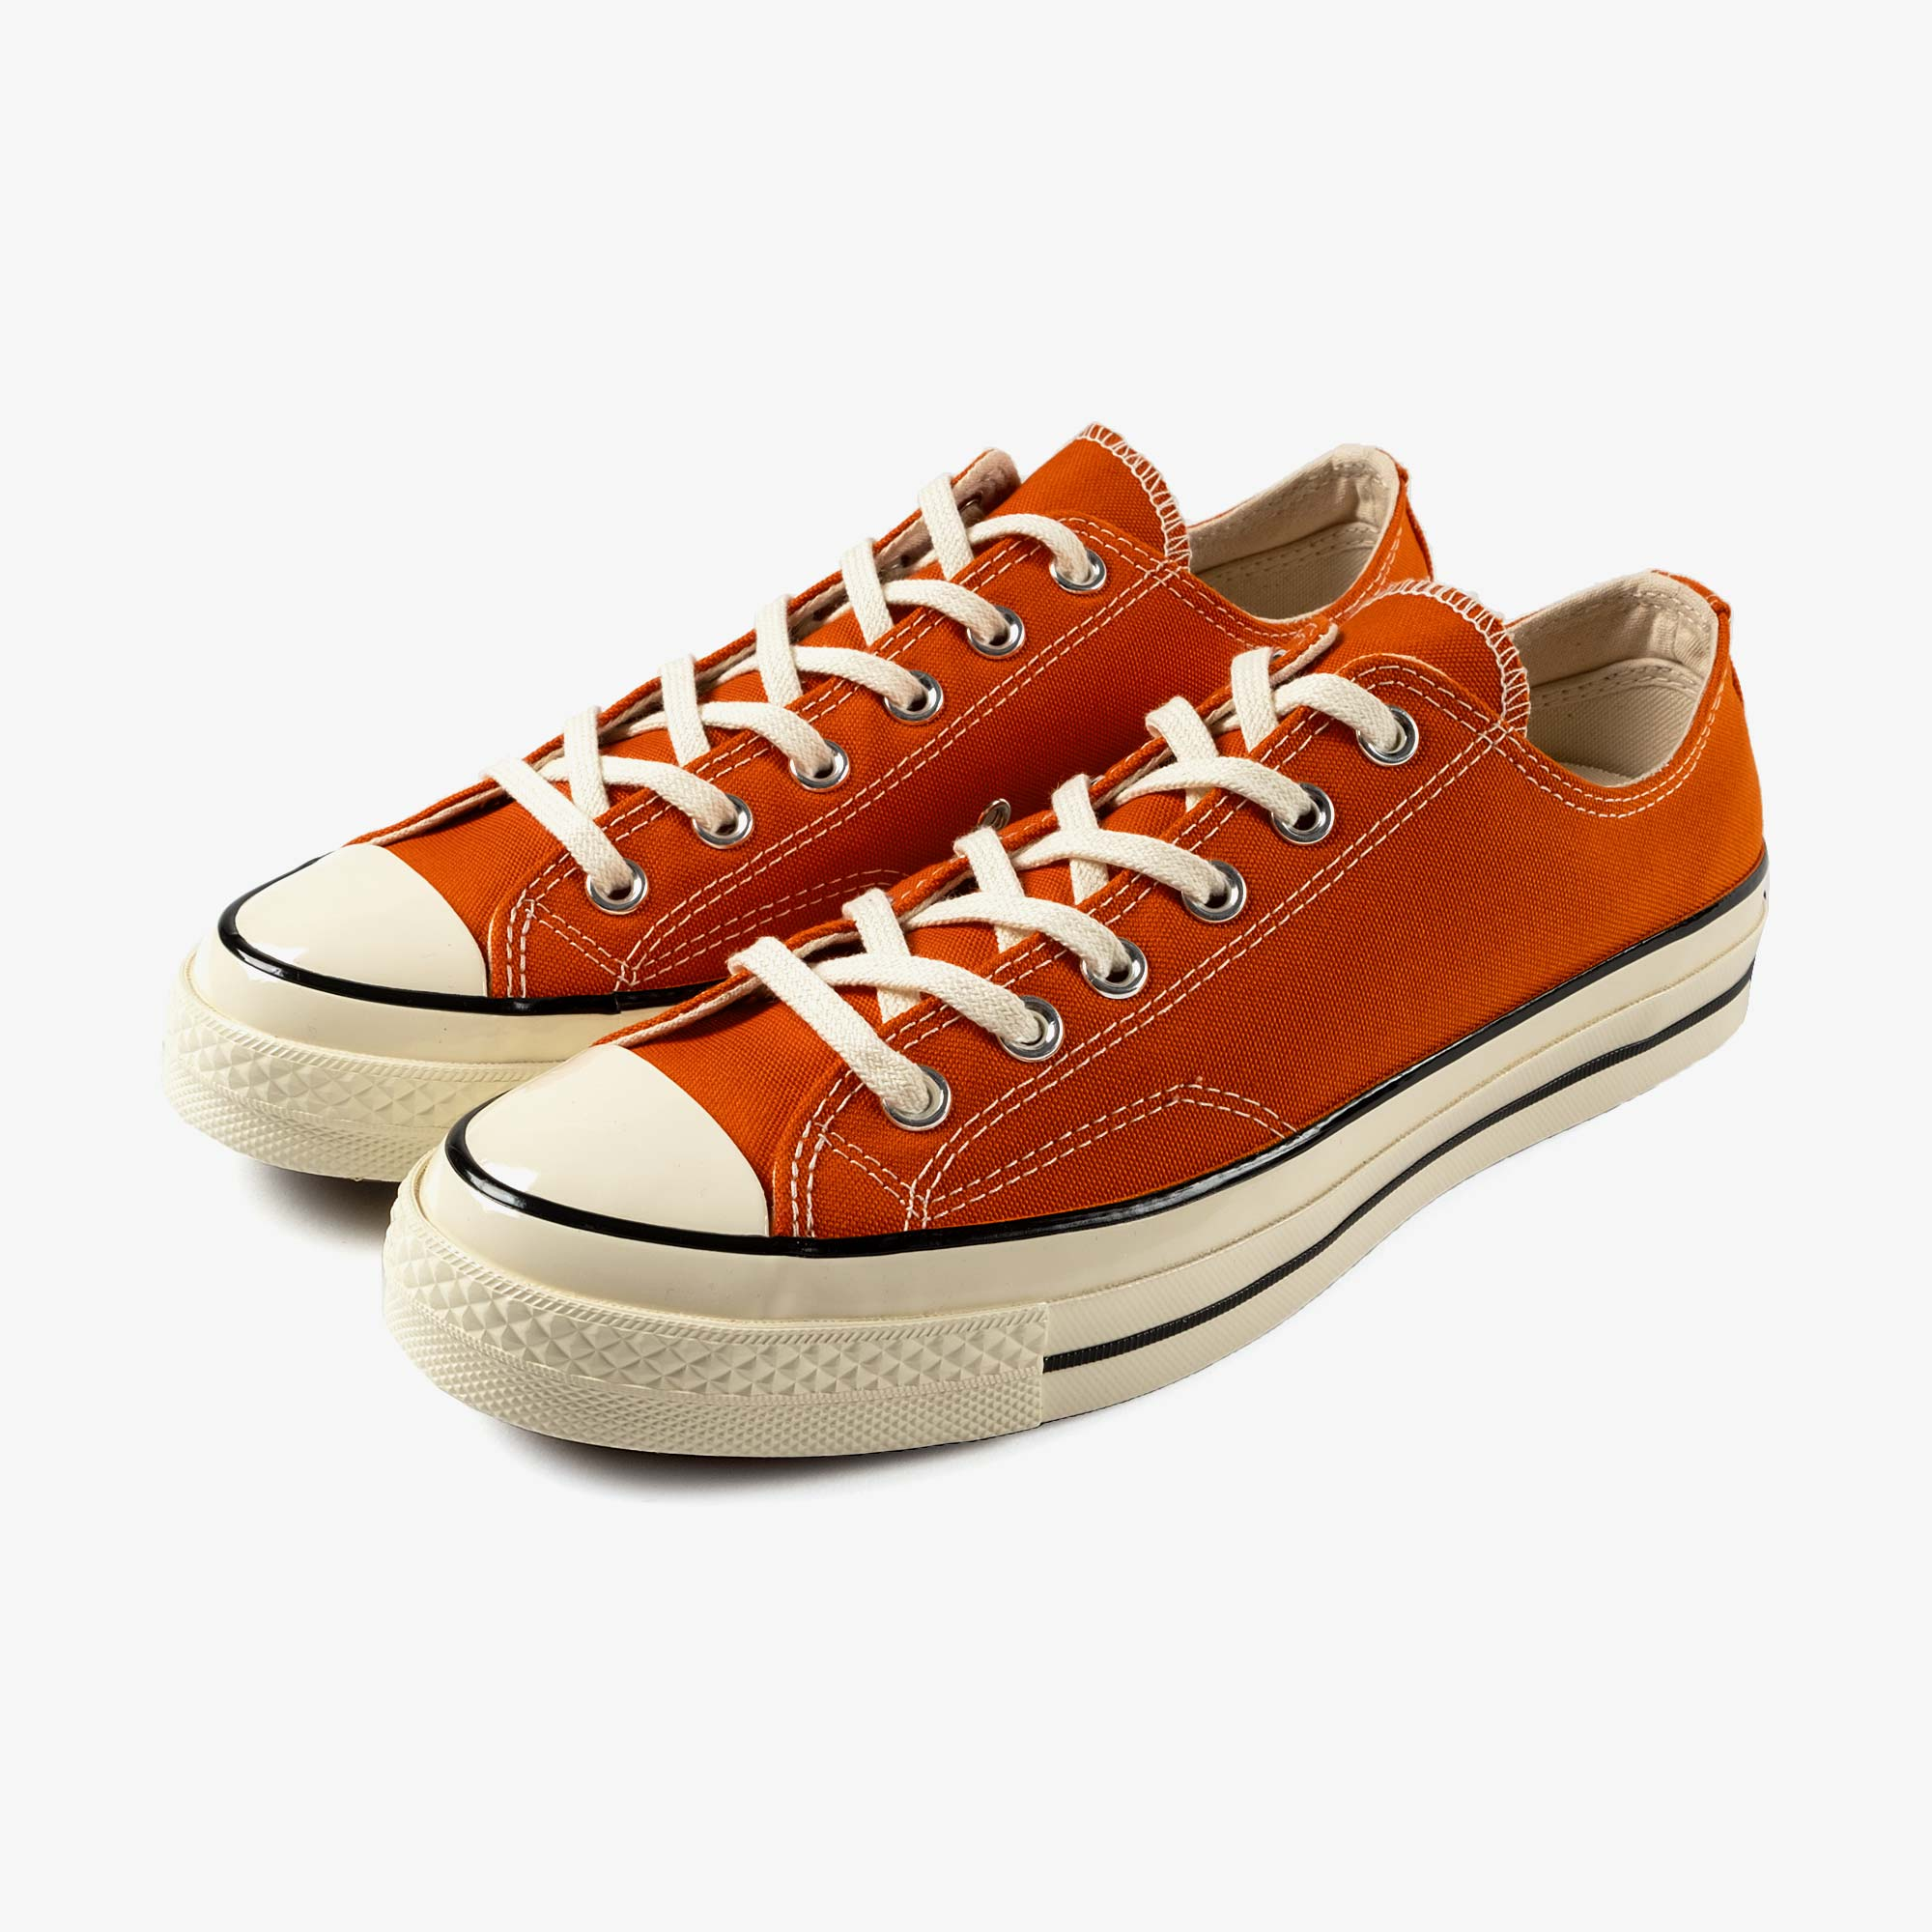 Converse Chuck Taylor Low 70 Recycled Canvas - Fire Pit 2